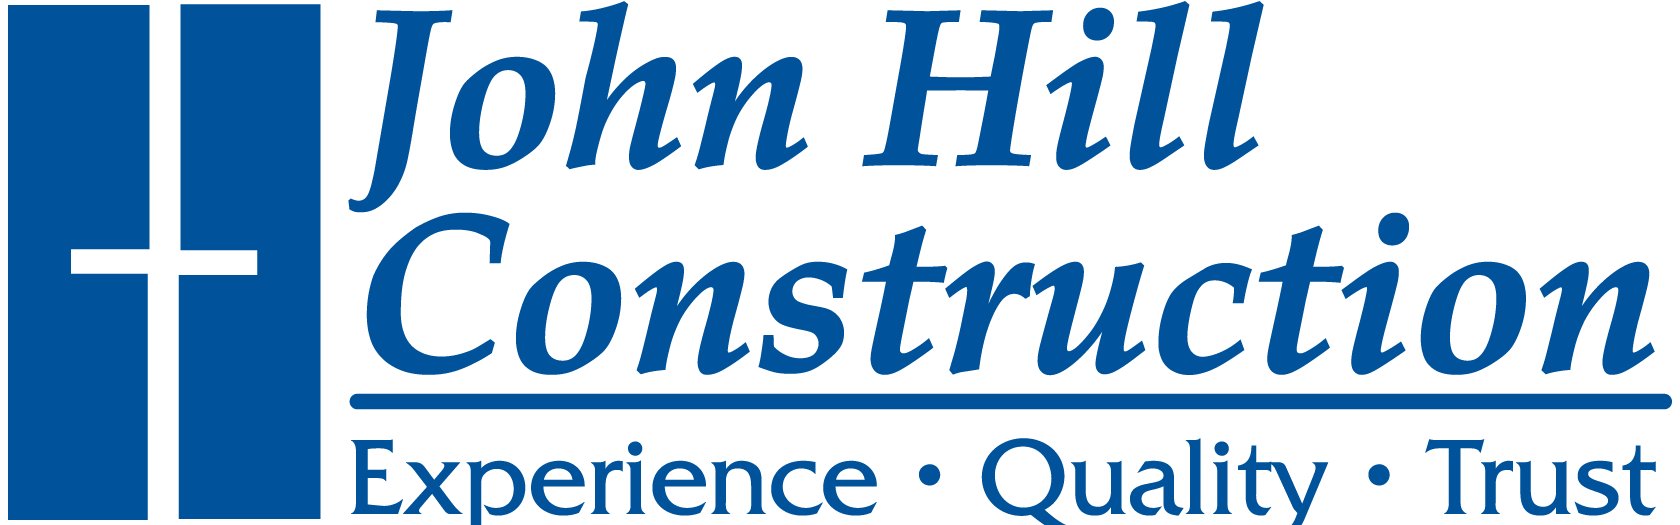 John Hill Construction